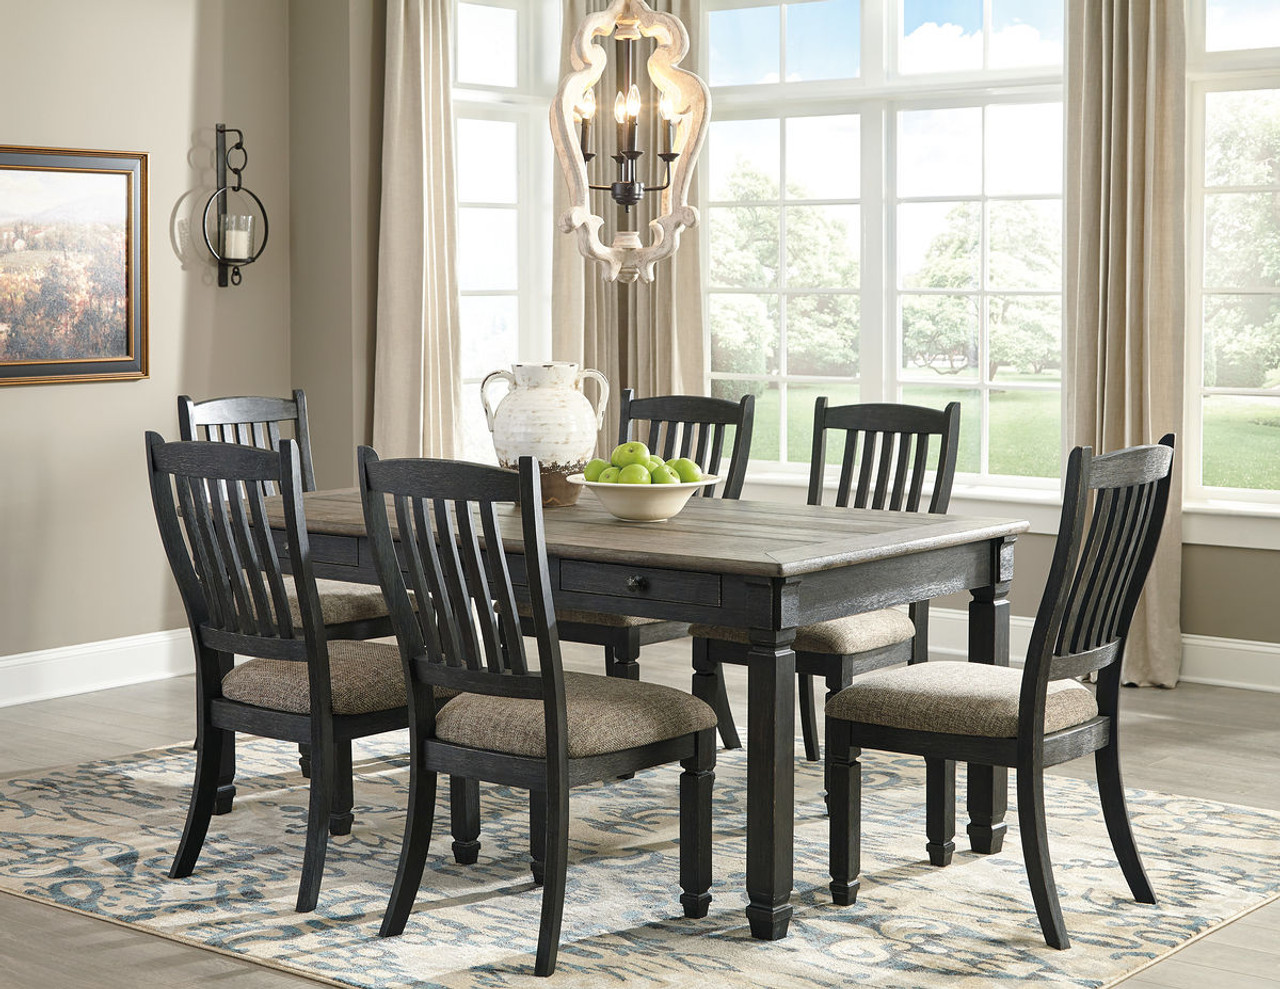 Ashley Tyler Creek Black Gray 7 Pc Rectangular Dining Room Table 6 Uph Side Chairs On Sale At Red Shed Furniture Serving Goldsboro Wilson Greenville Nc